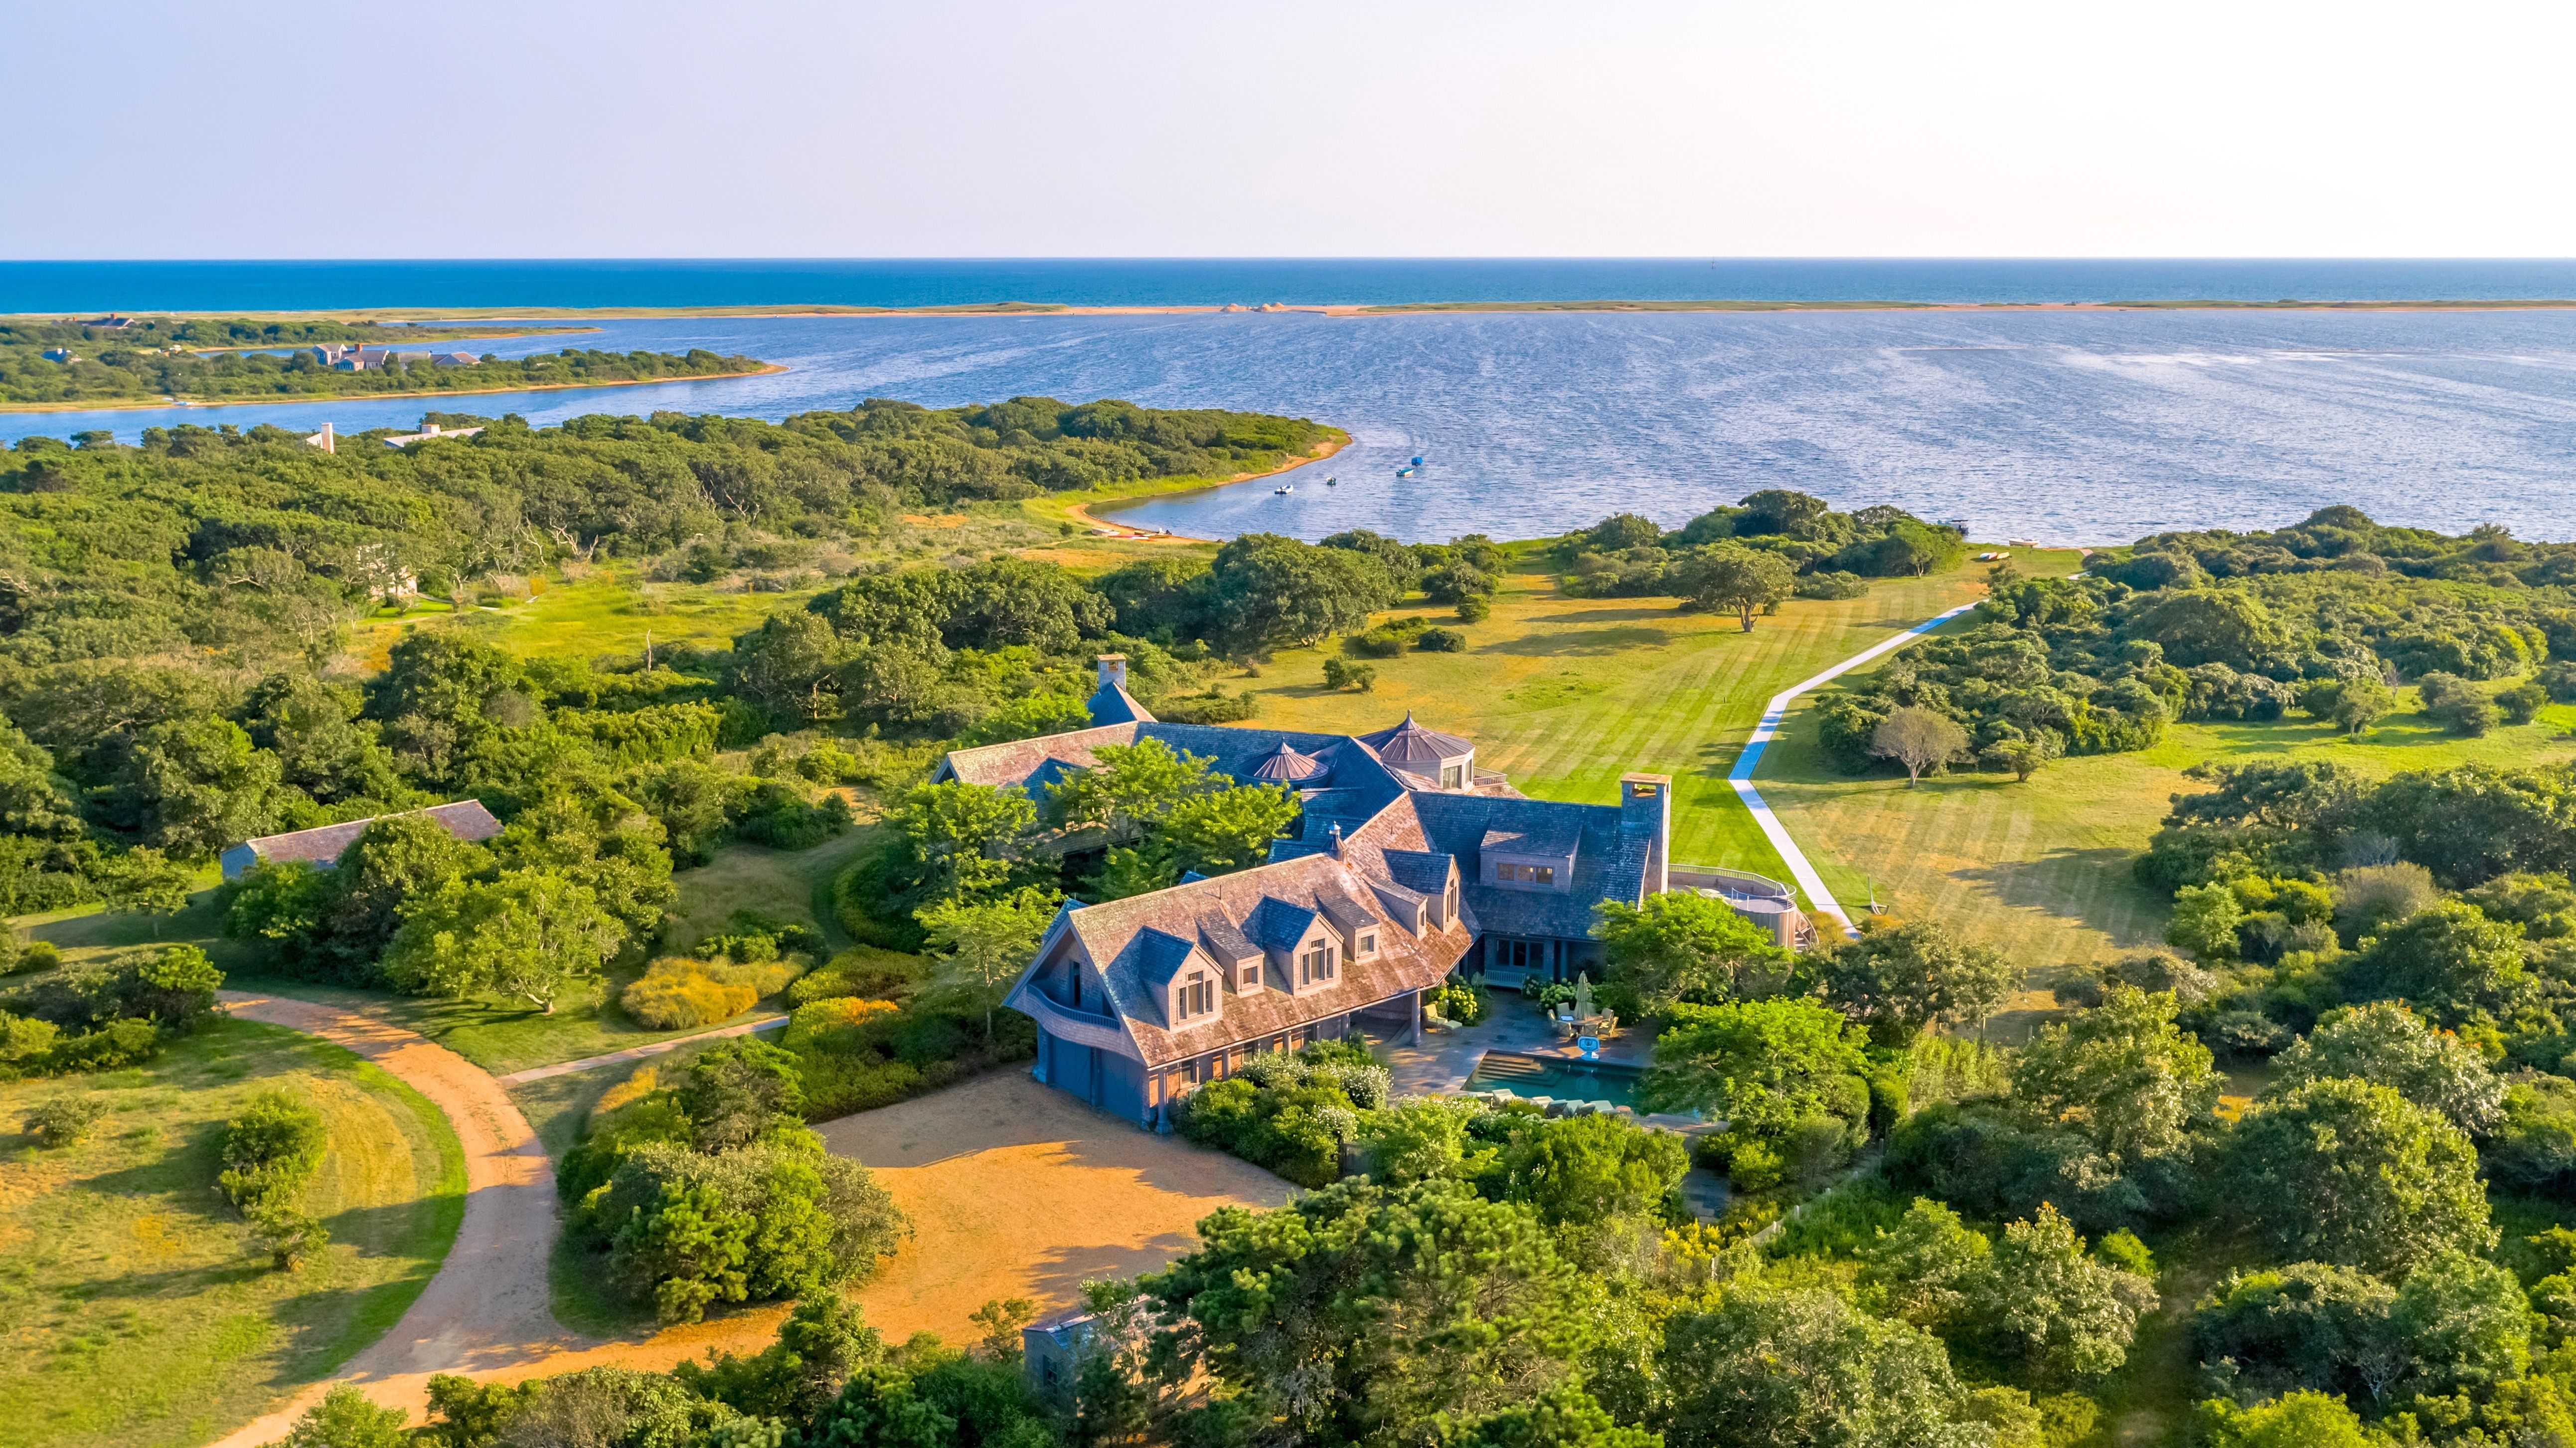 Single Family Home for Sale at 79 Turkeyland Cove Road Edgartown, Massachusetts,02539 United States